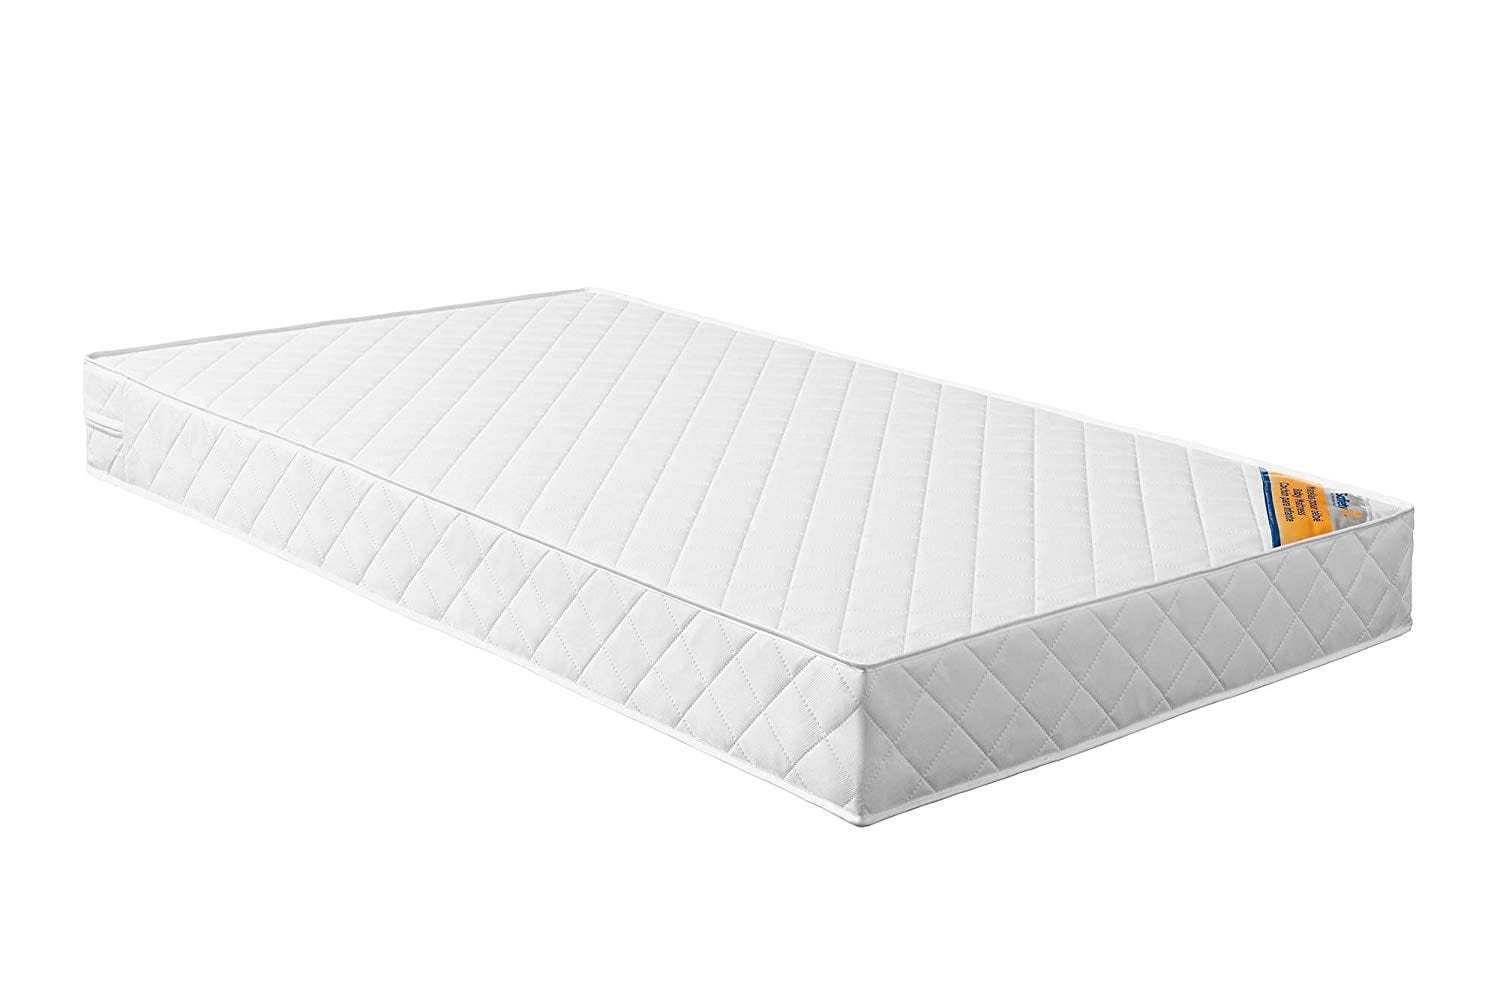 Newton Breathable Mattress Reviews The Best Crib Mattress Brands And Buying Guide For 2019